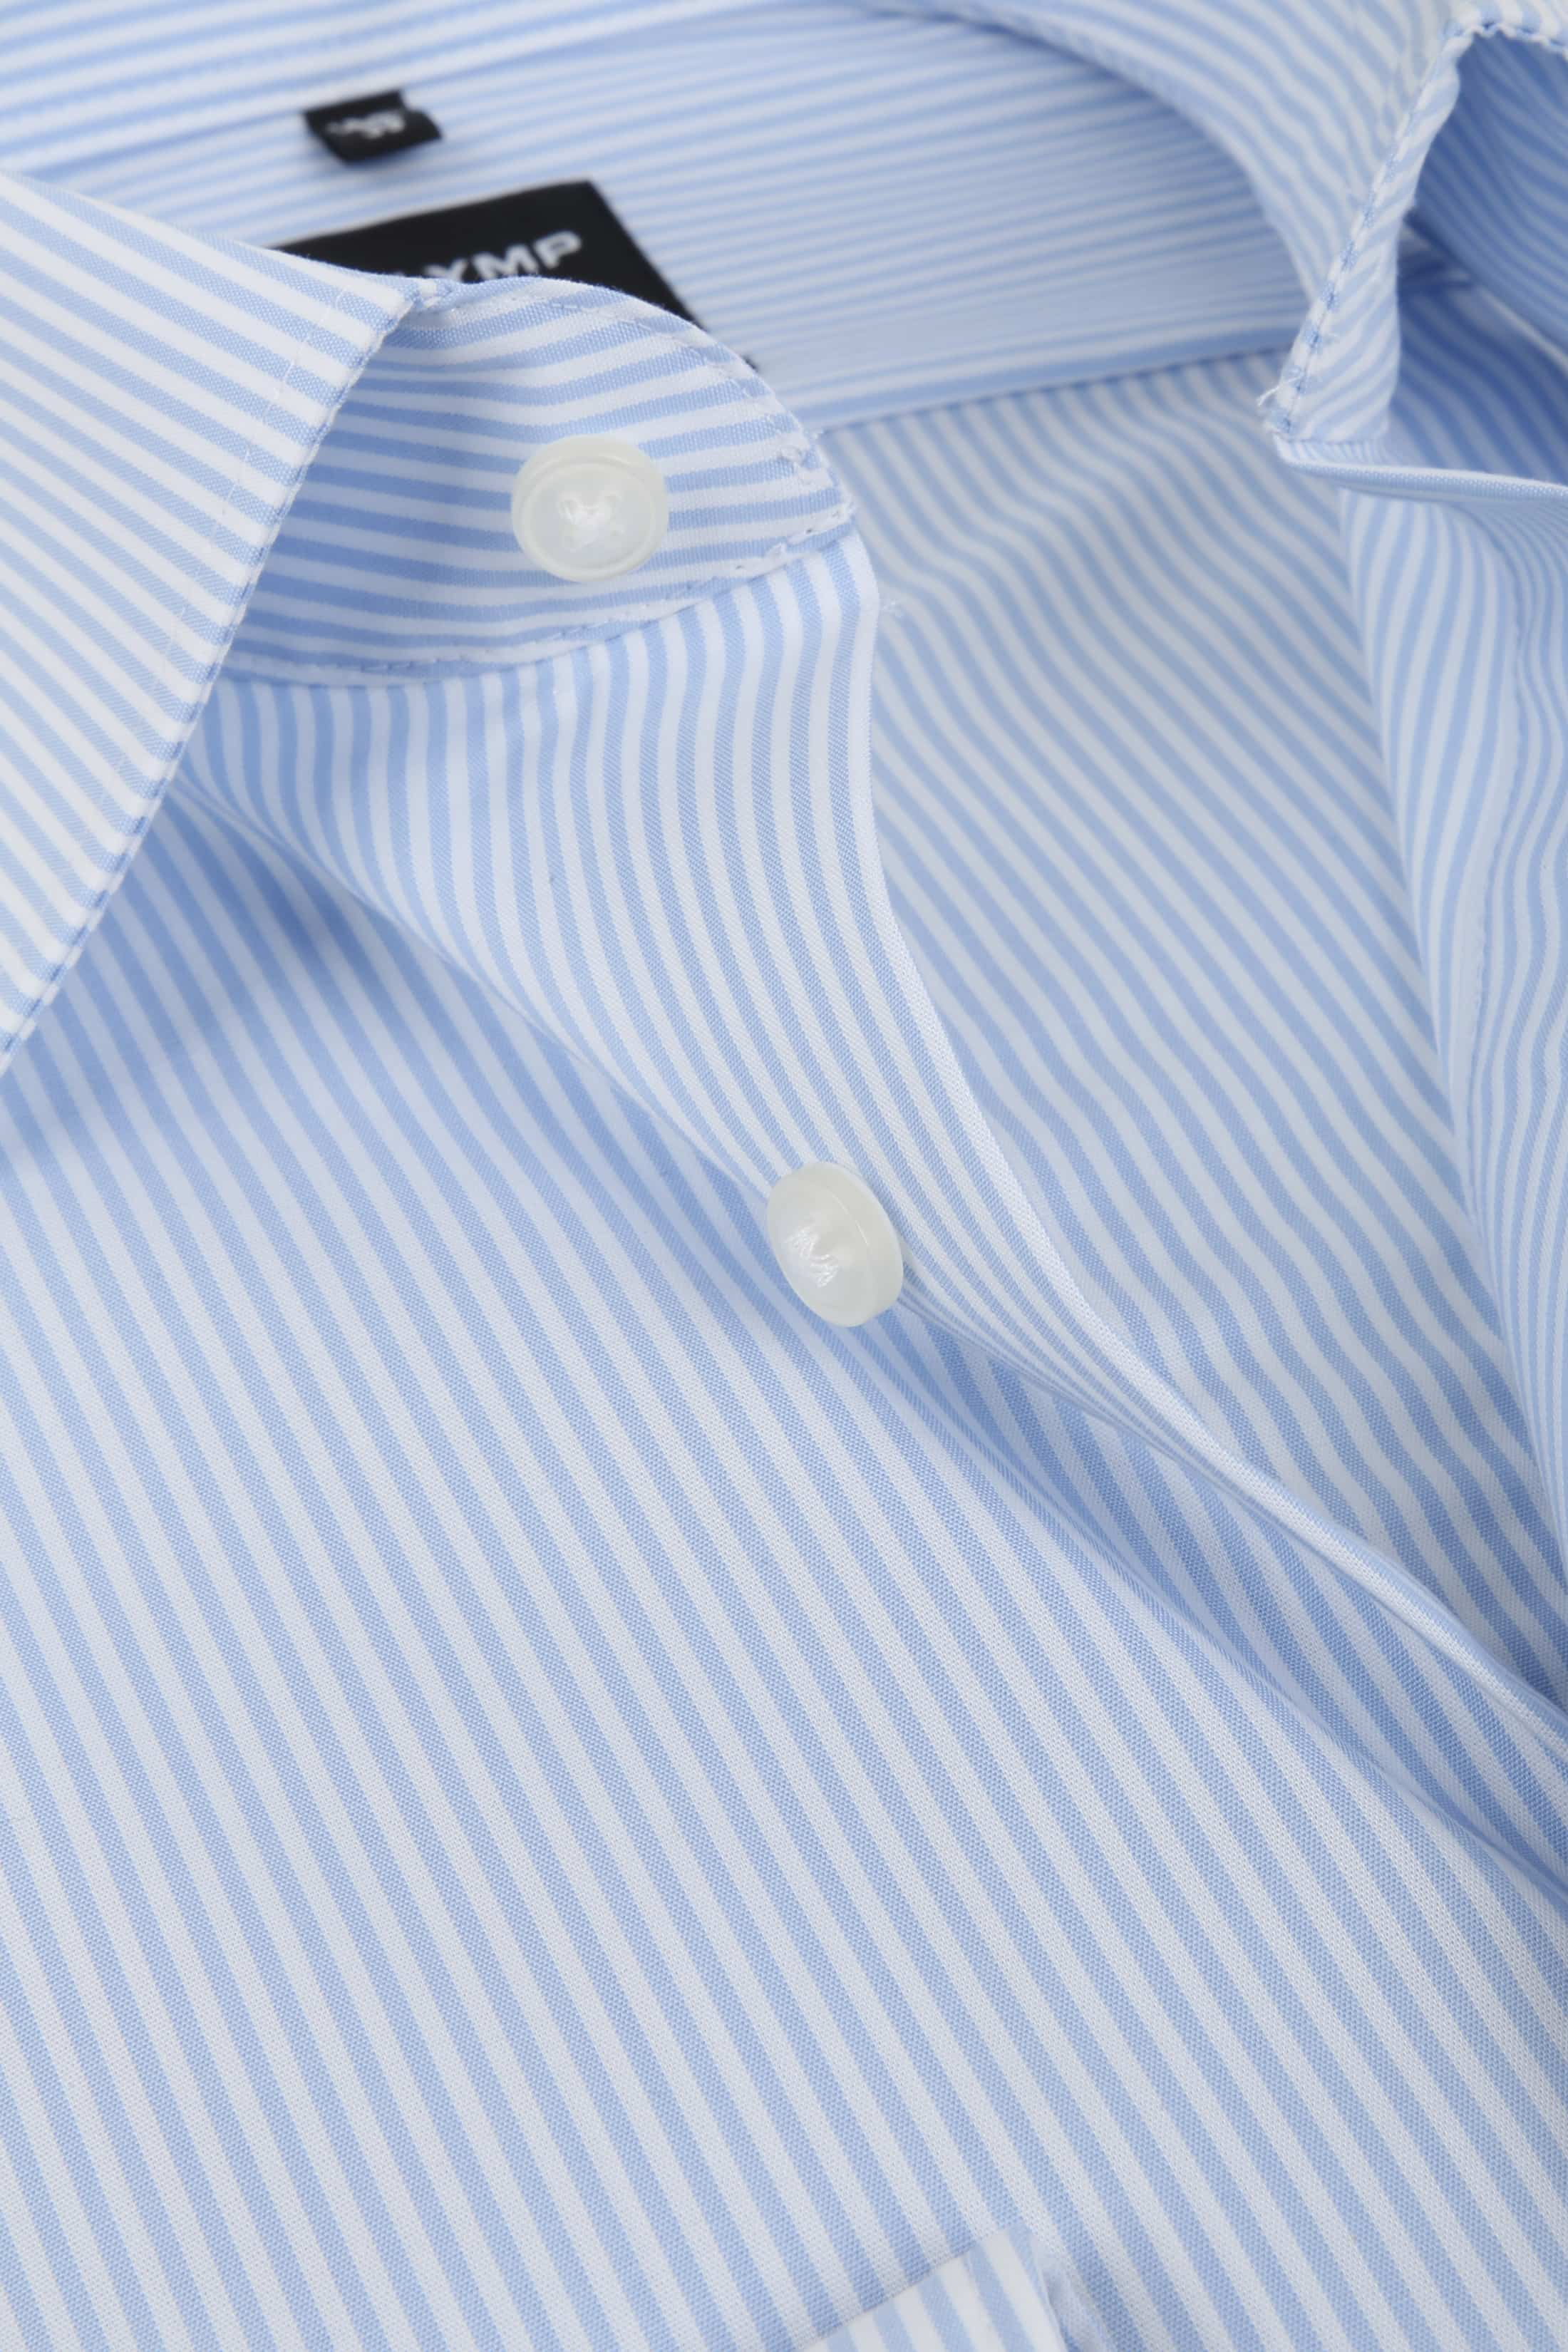 Olymp Luxor Shirt Light Blue Striped foto 1